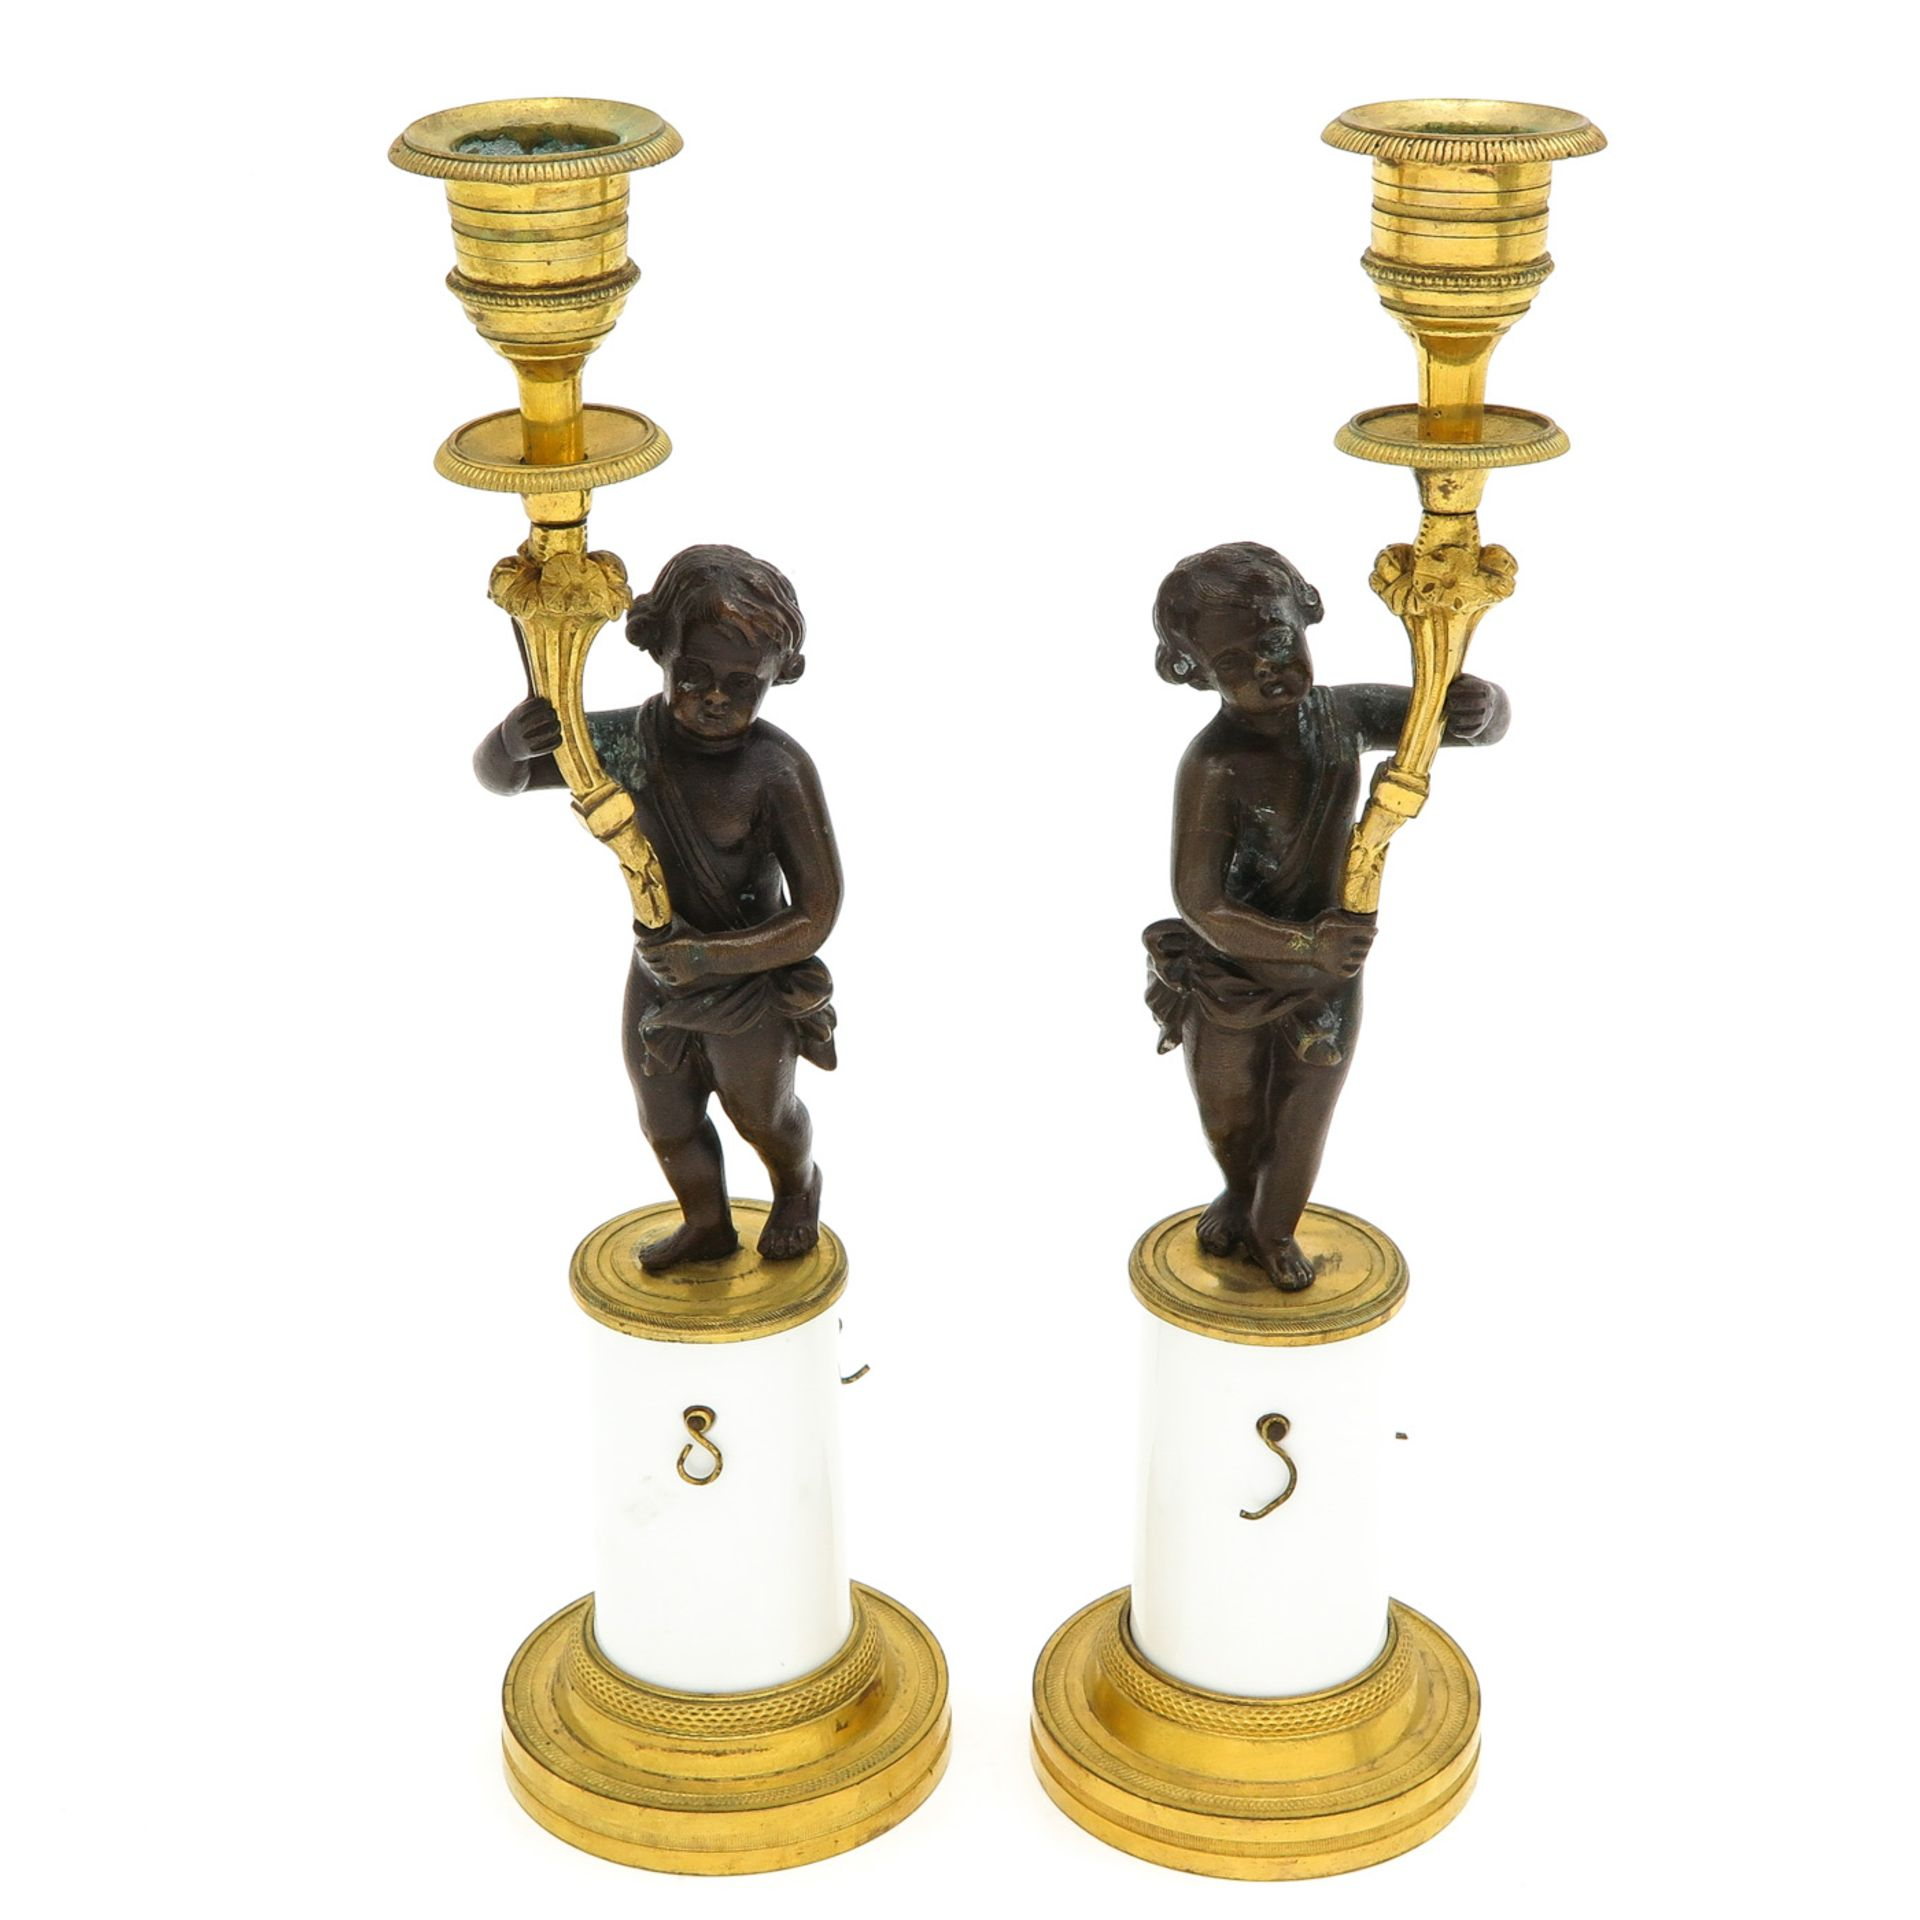 Los 1072 - A Pair of 19th Century Empire Candlesticks